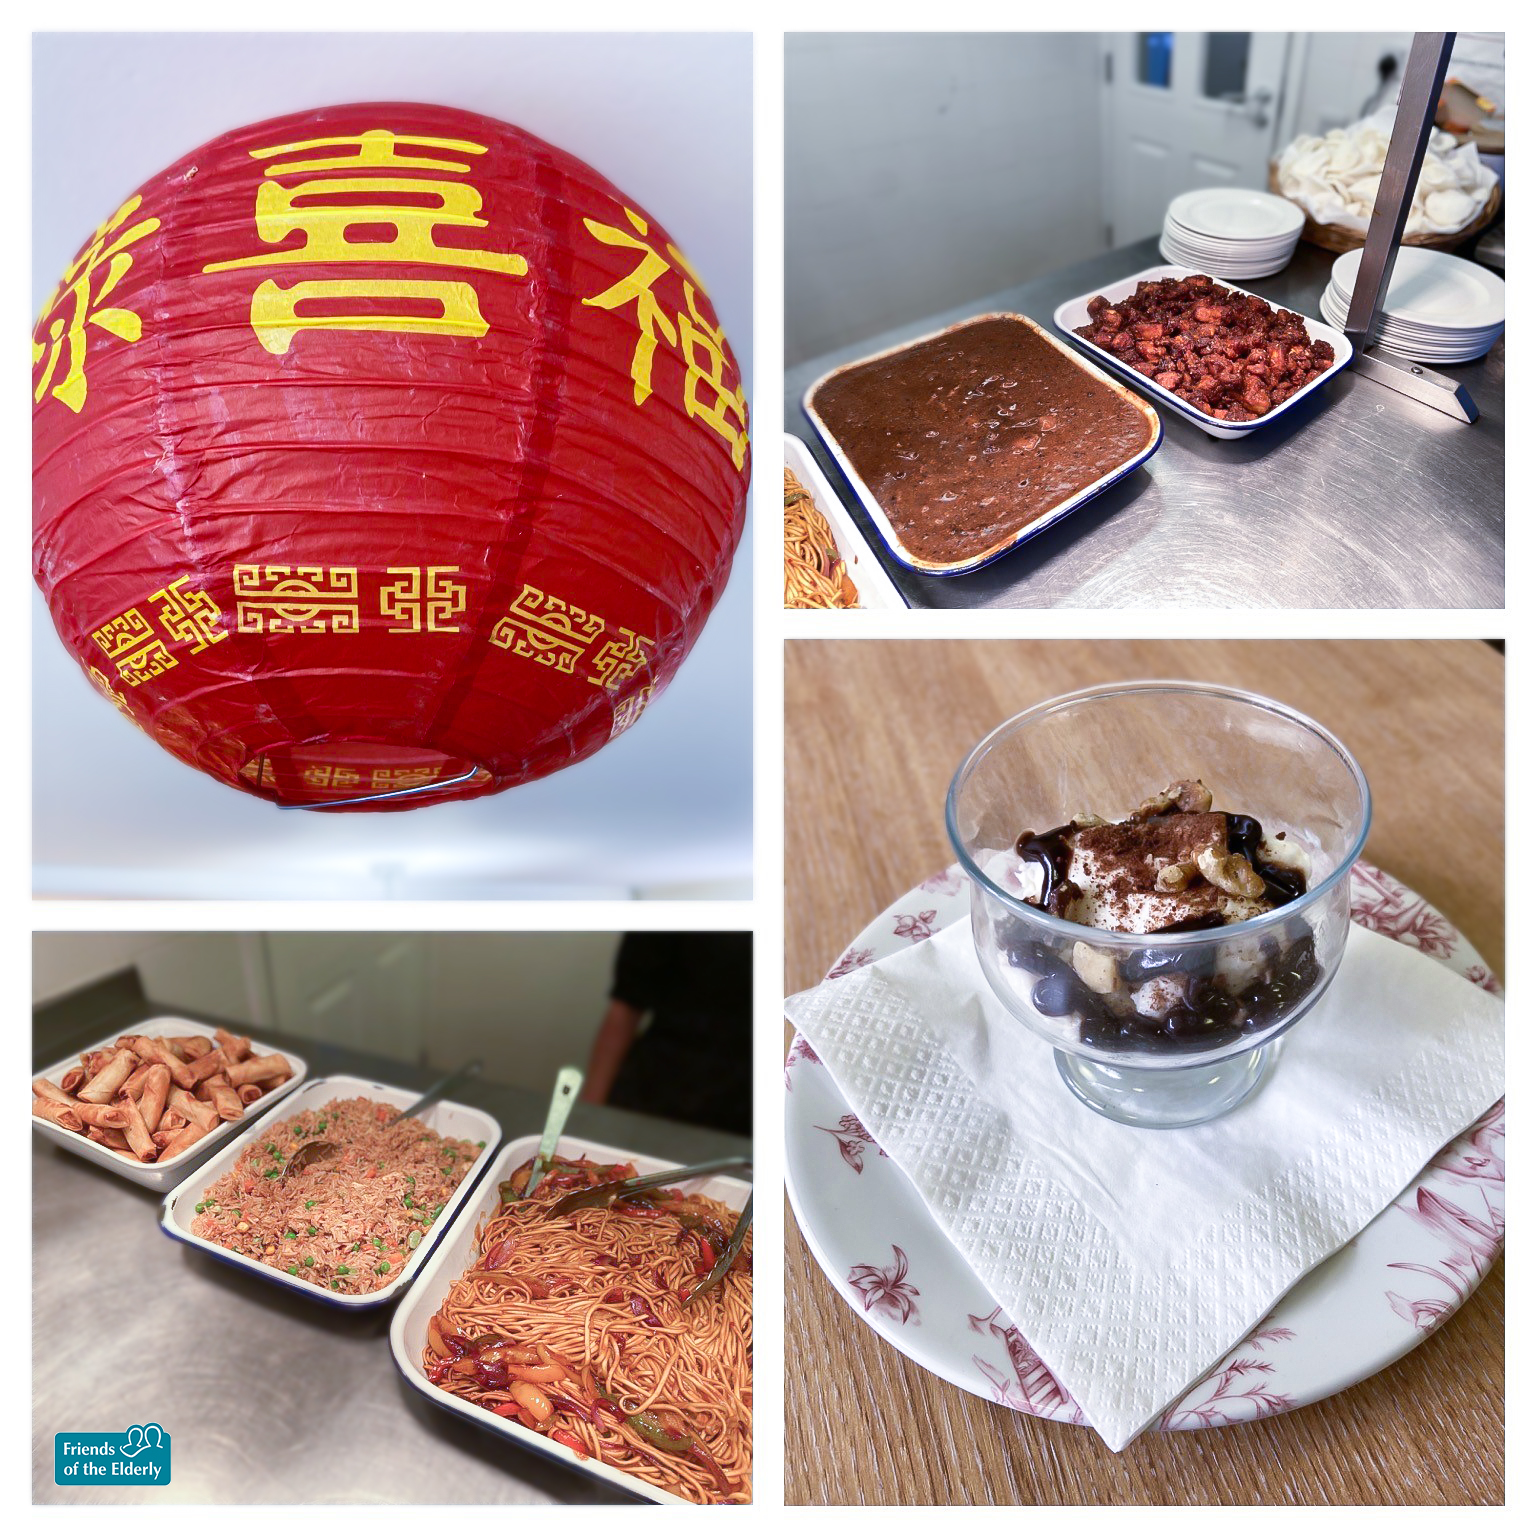 A picture of the Chinese themed lunch served at our Luton care home.